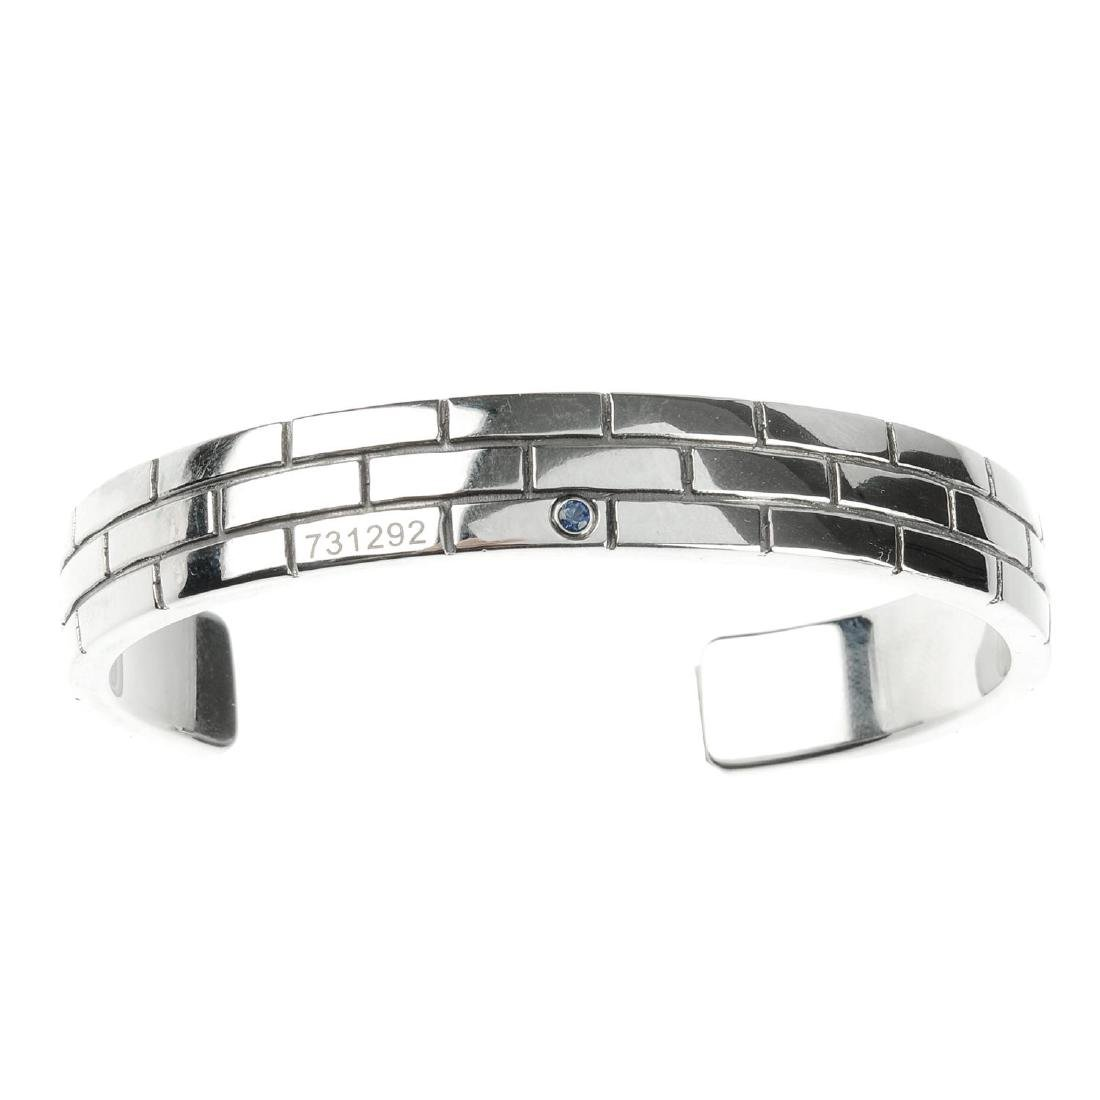 MONT BLANC - a steel bangle. Designed as a torque-style